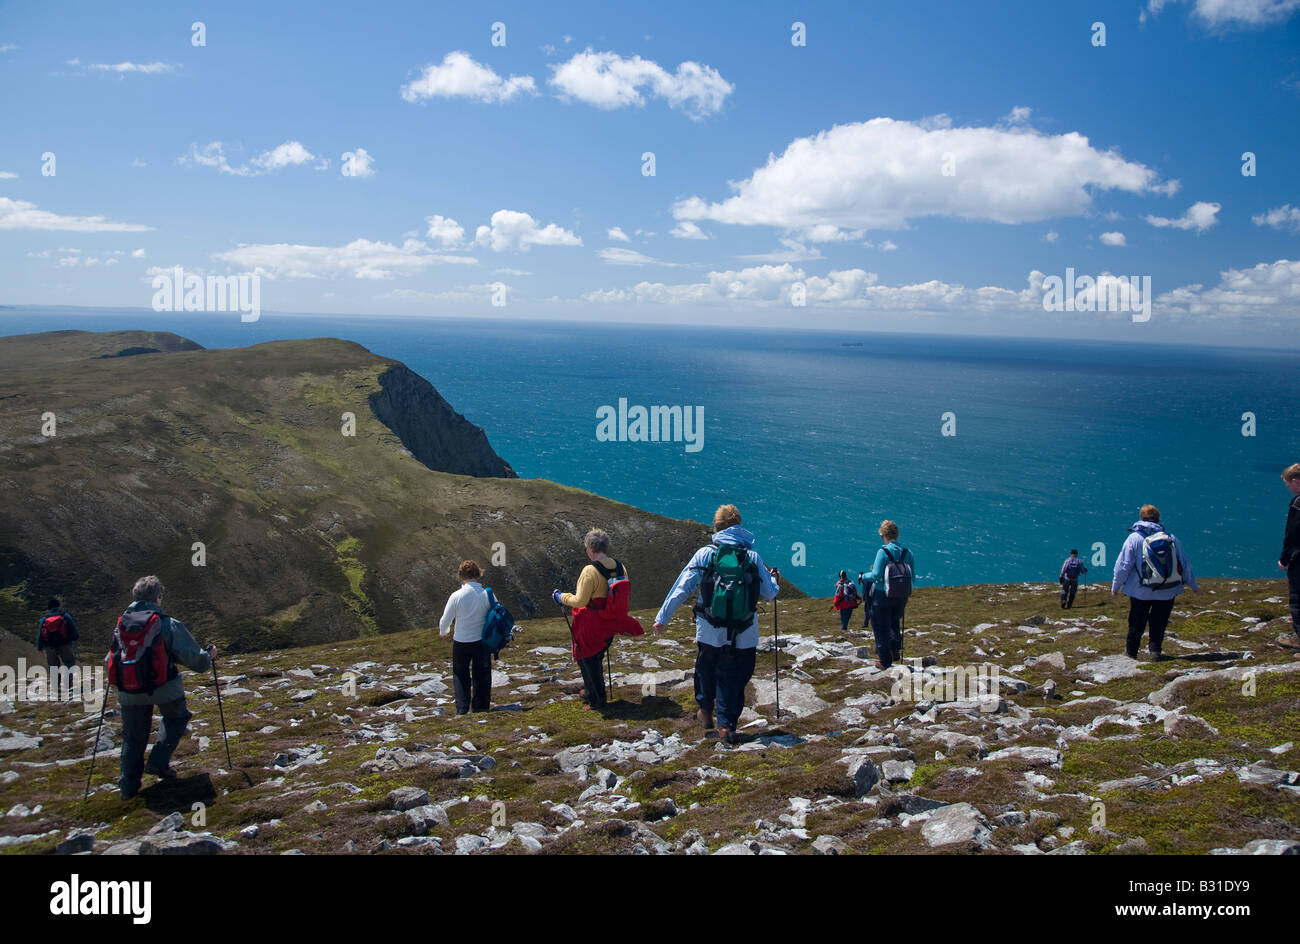 Hikers exploring the Menawn Cliffs, Achill Island, County Mayo, Ireland. - Stock Image